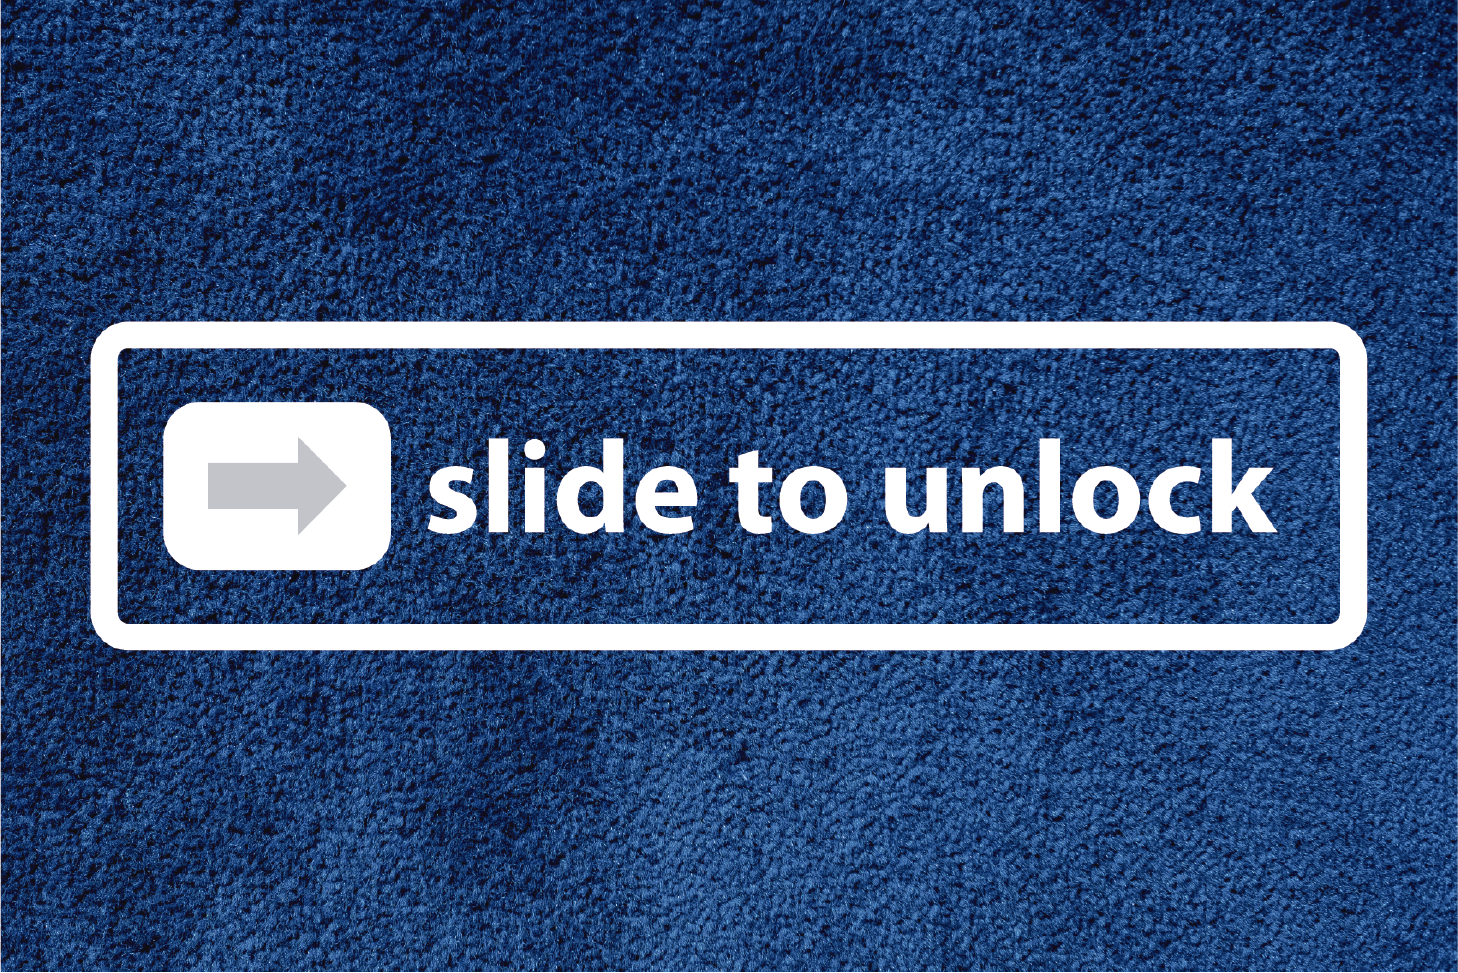 TenStickers. slide to unlock bespoke rugs. A wonderfully quirky text vinyl rug that is just perfect for your front door step! All your neighbours will be so jealous.